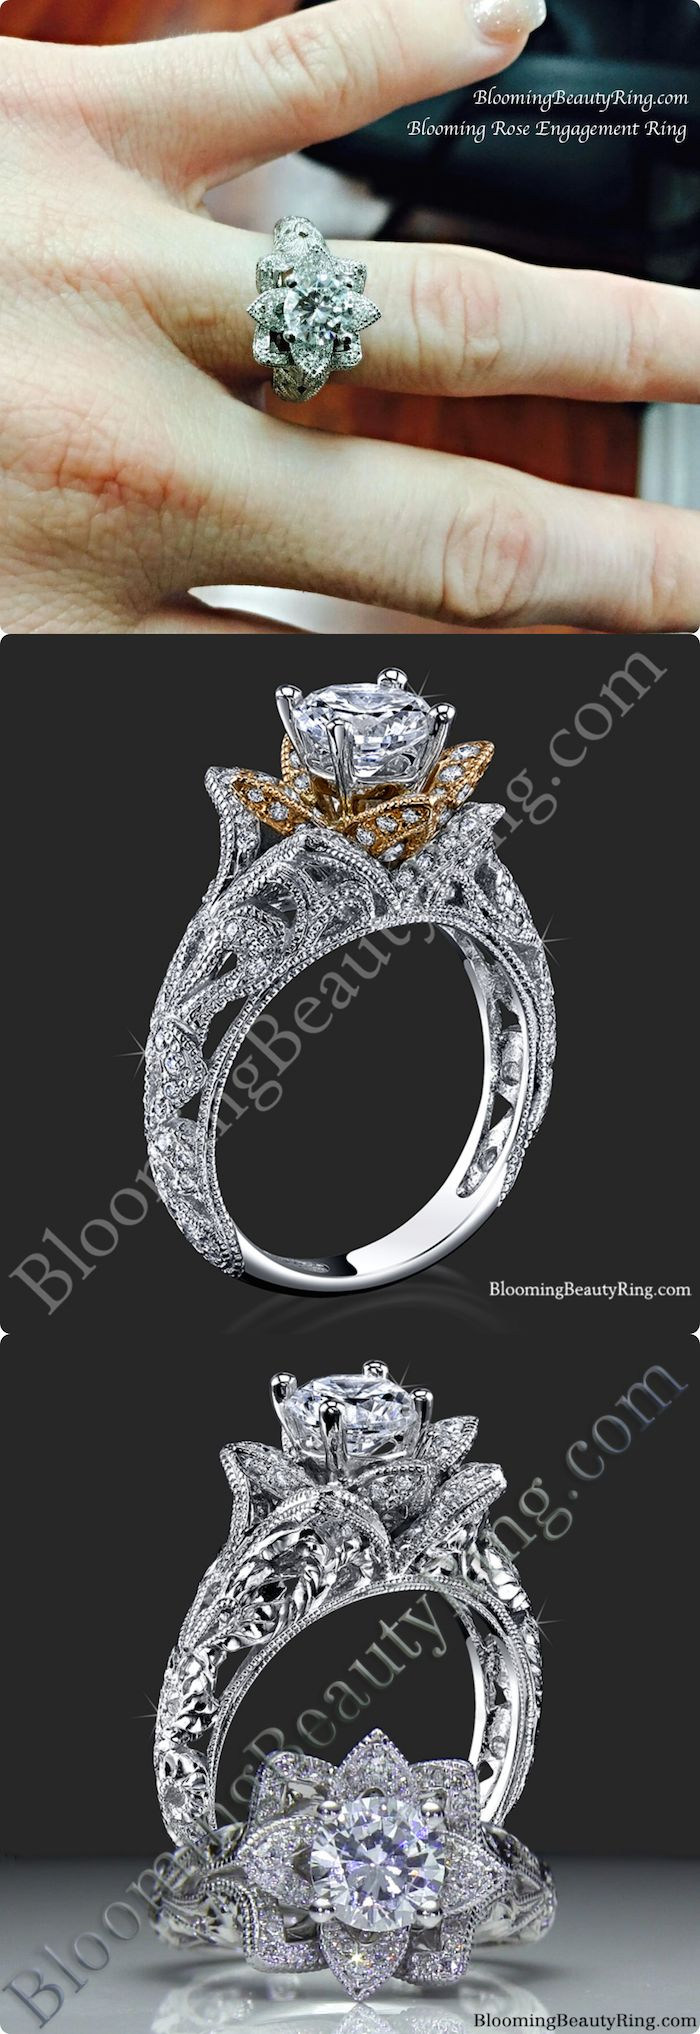 ring watch diamond unique rings lotus engraved engagement hand flower ctw